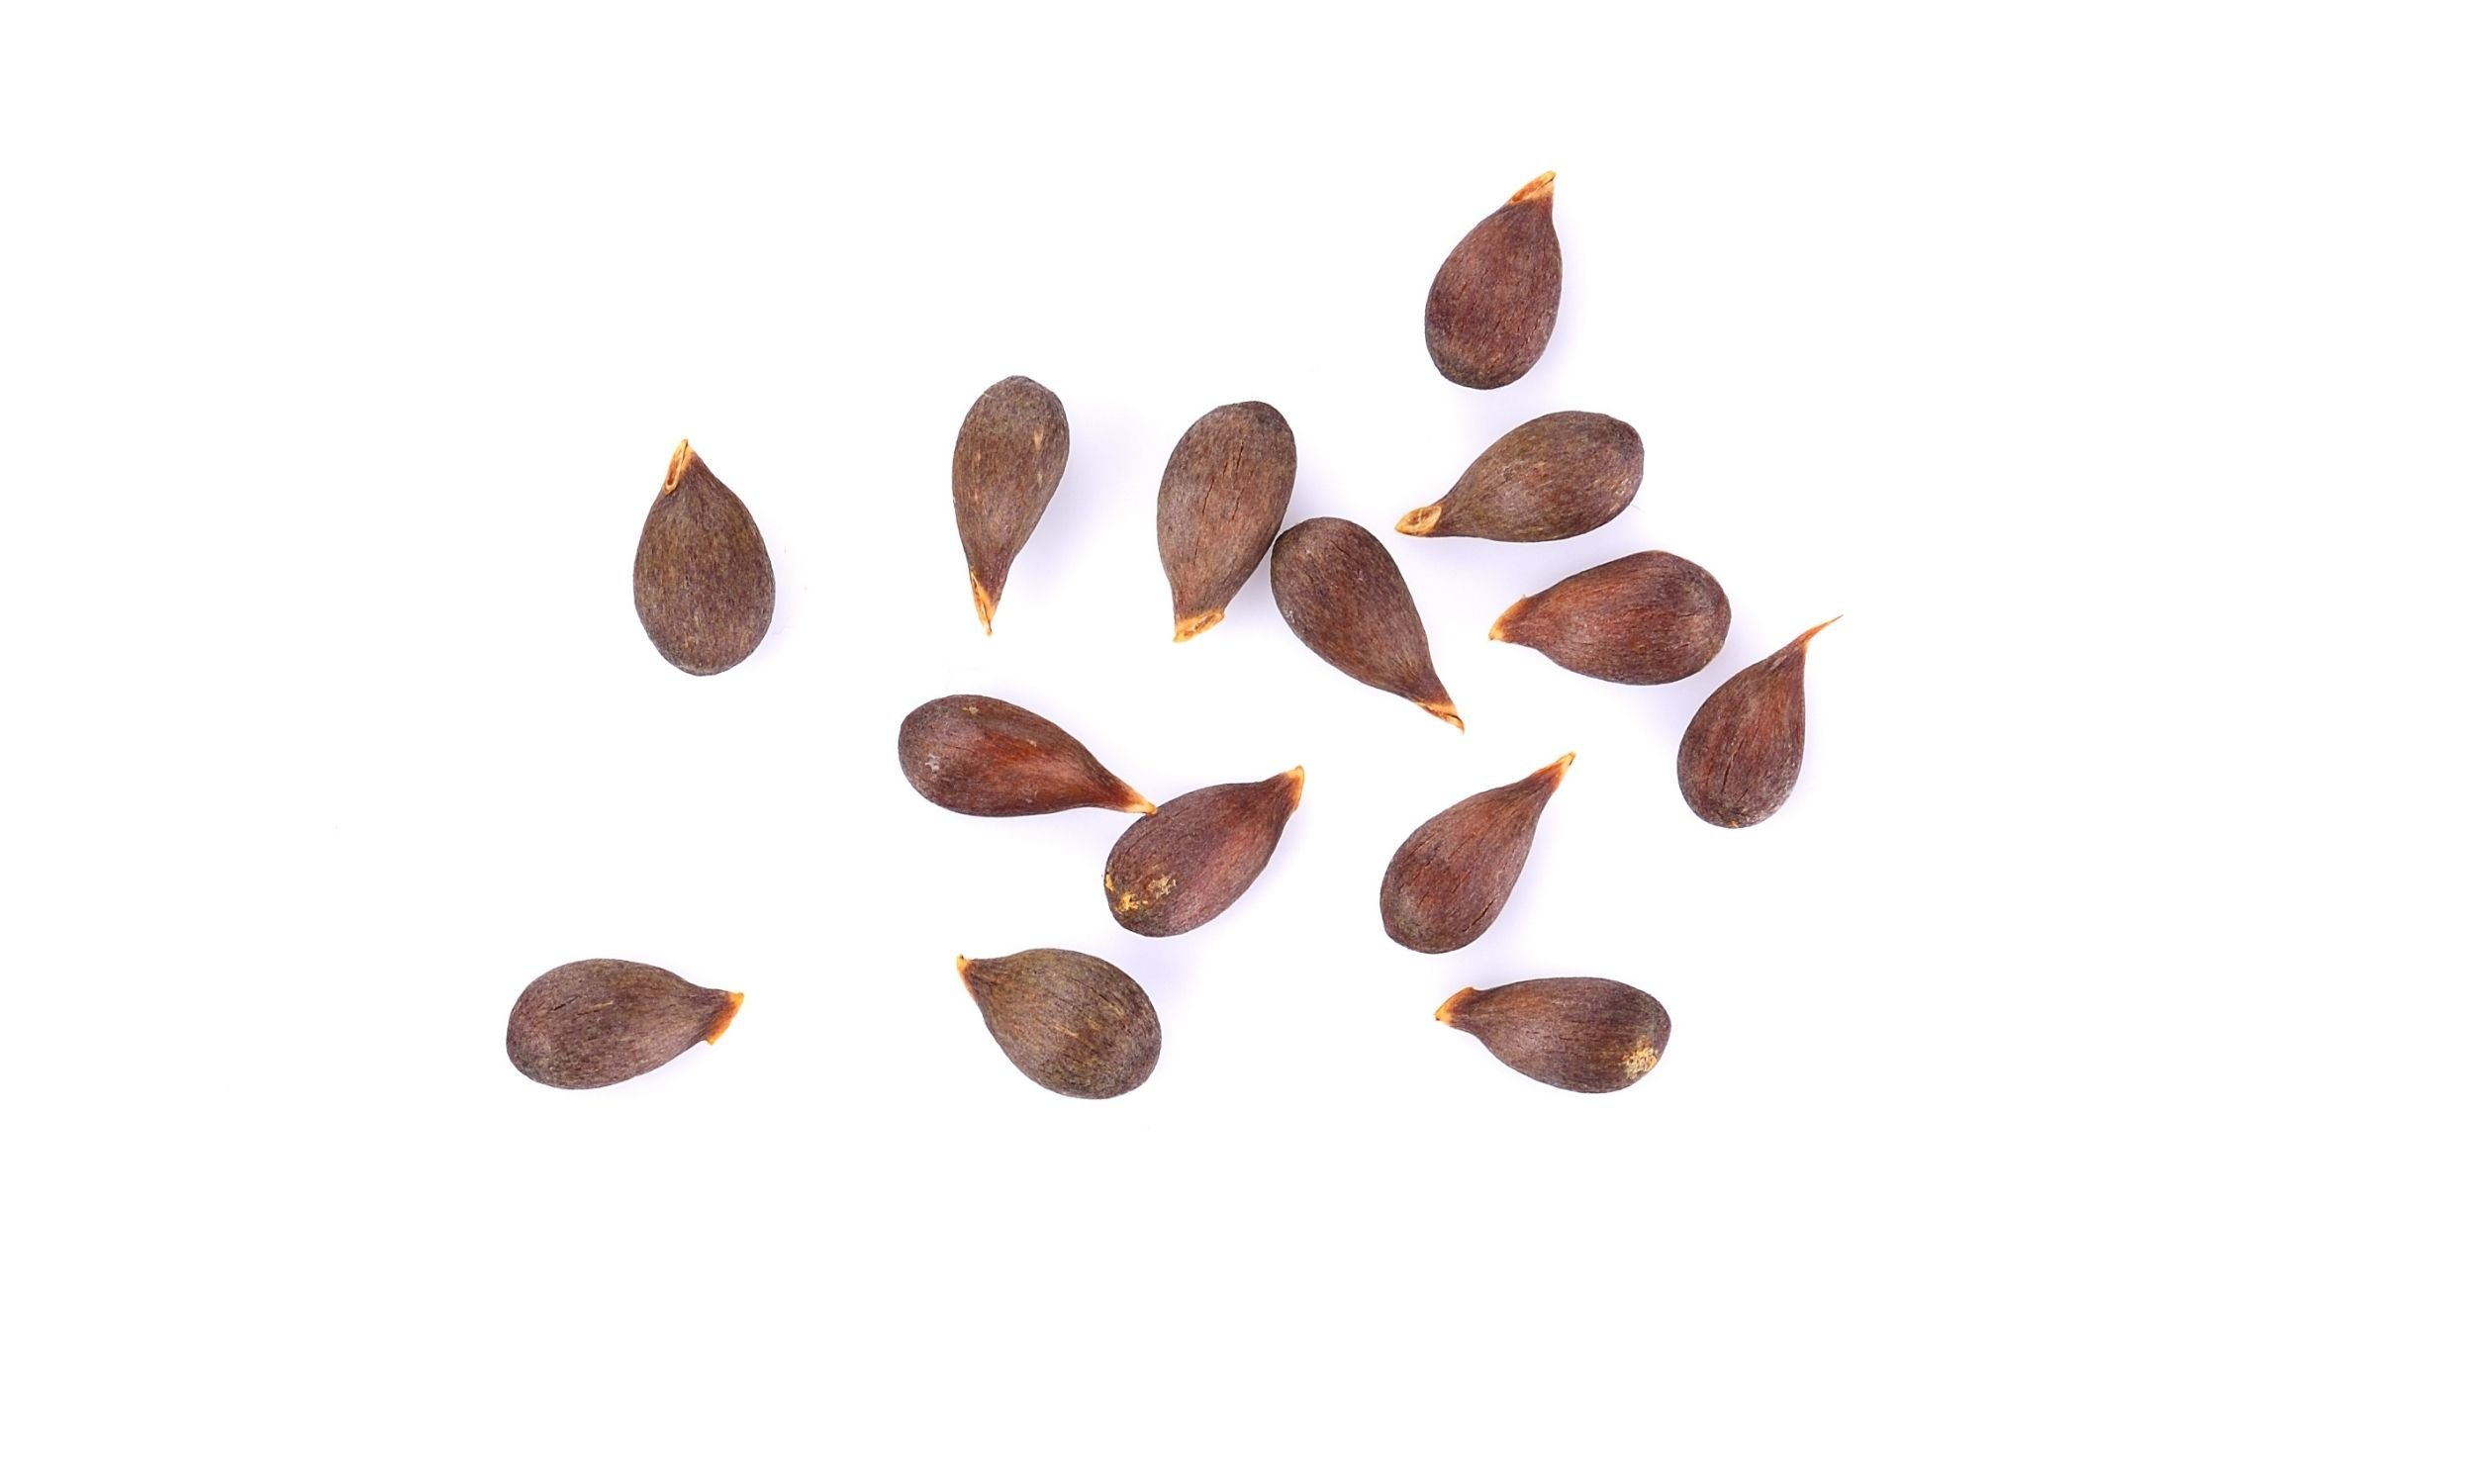 apple seeds on a white background